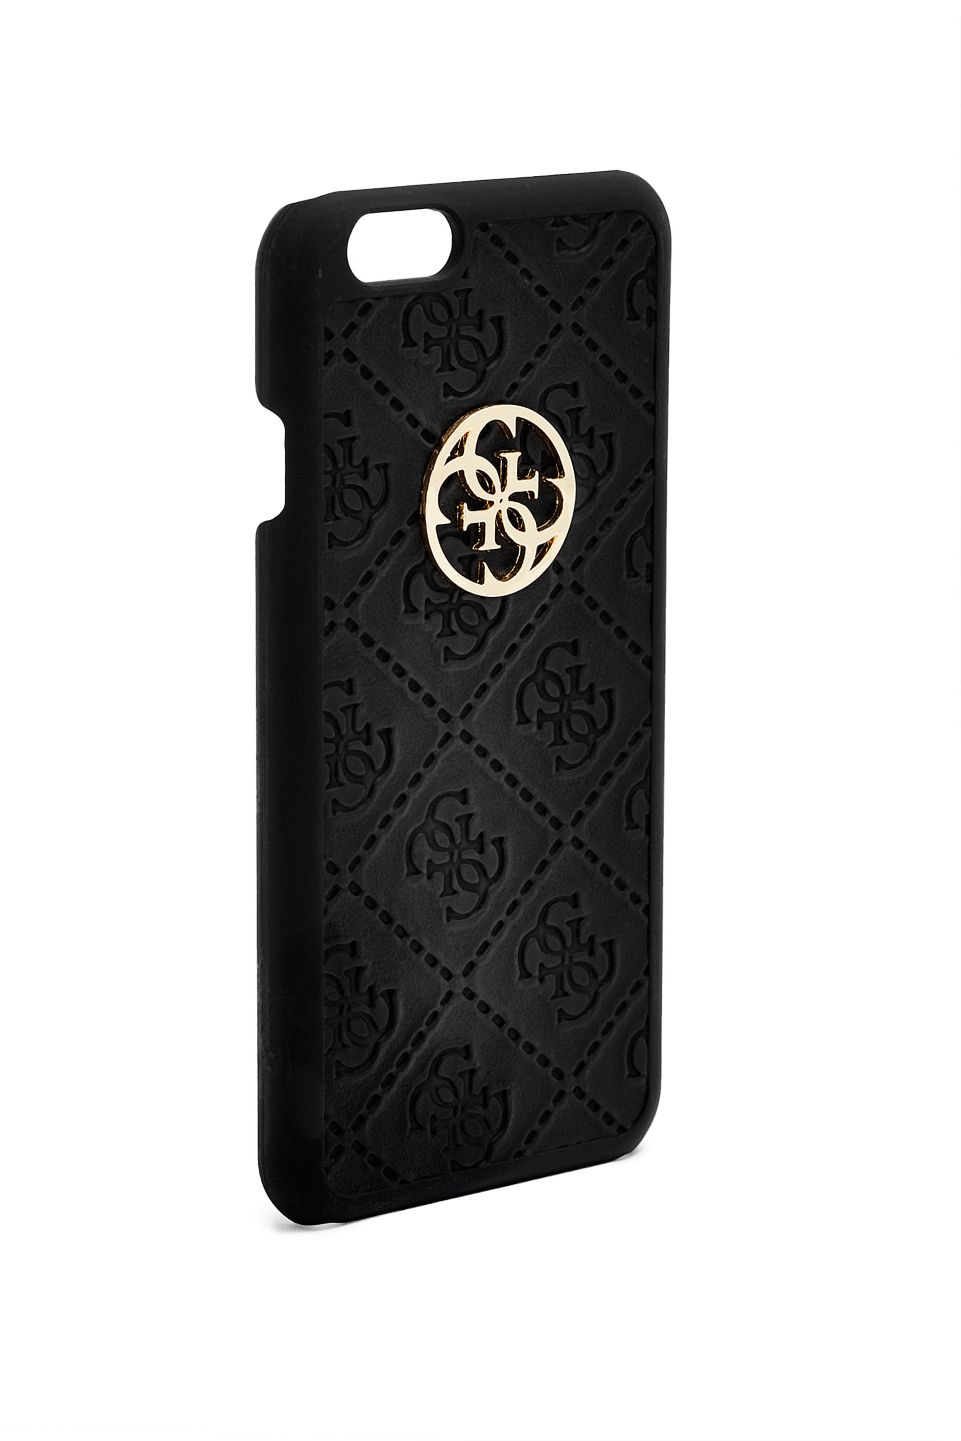 For the Icon: Black La Vida Logo iPhone 6 Case | GUESS.com #GUESSHoliday